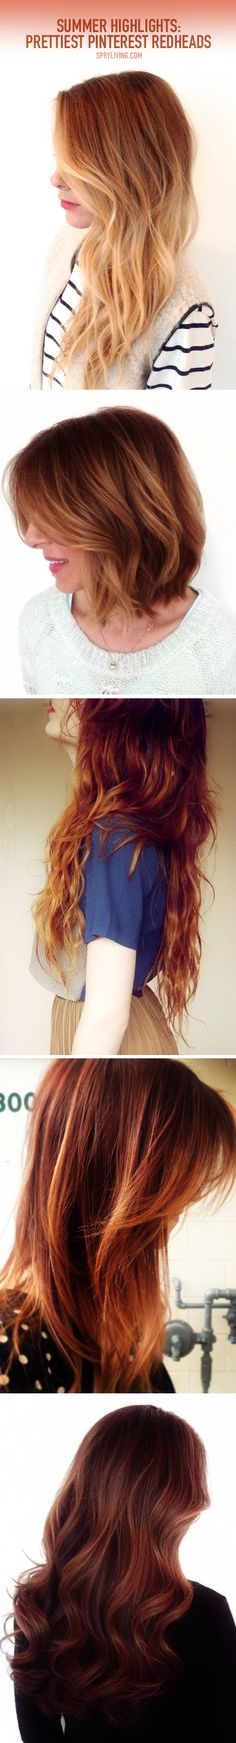 Prettiest Pinterest Redheads  CREDIT: pinterest.com